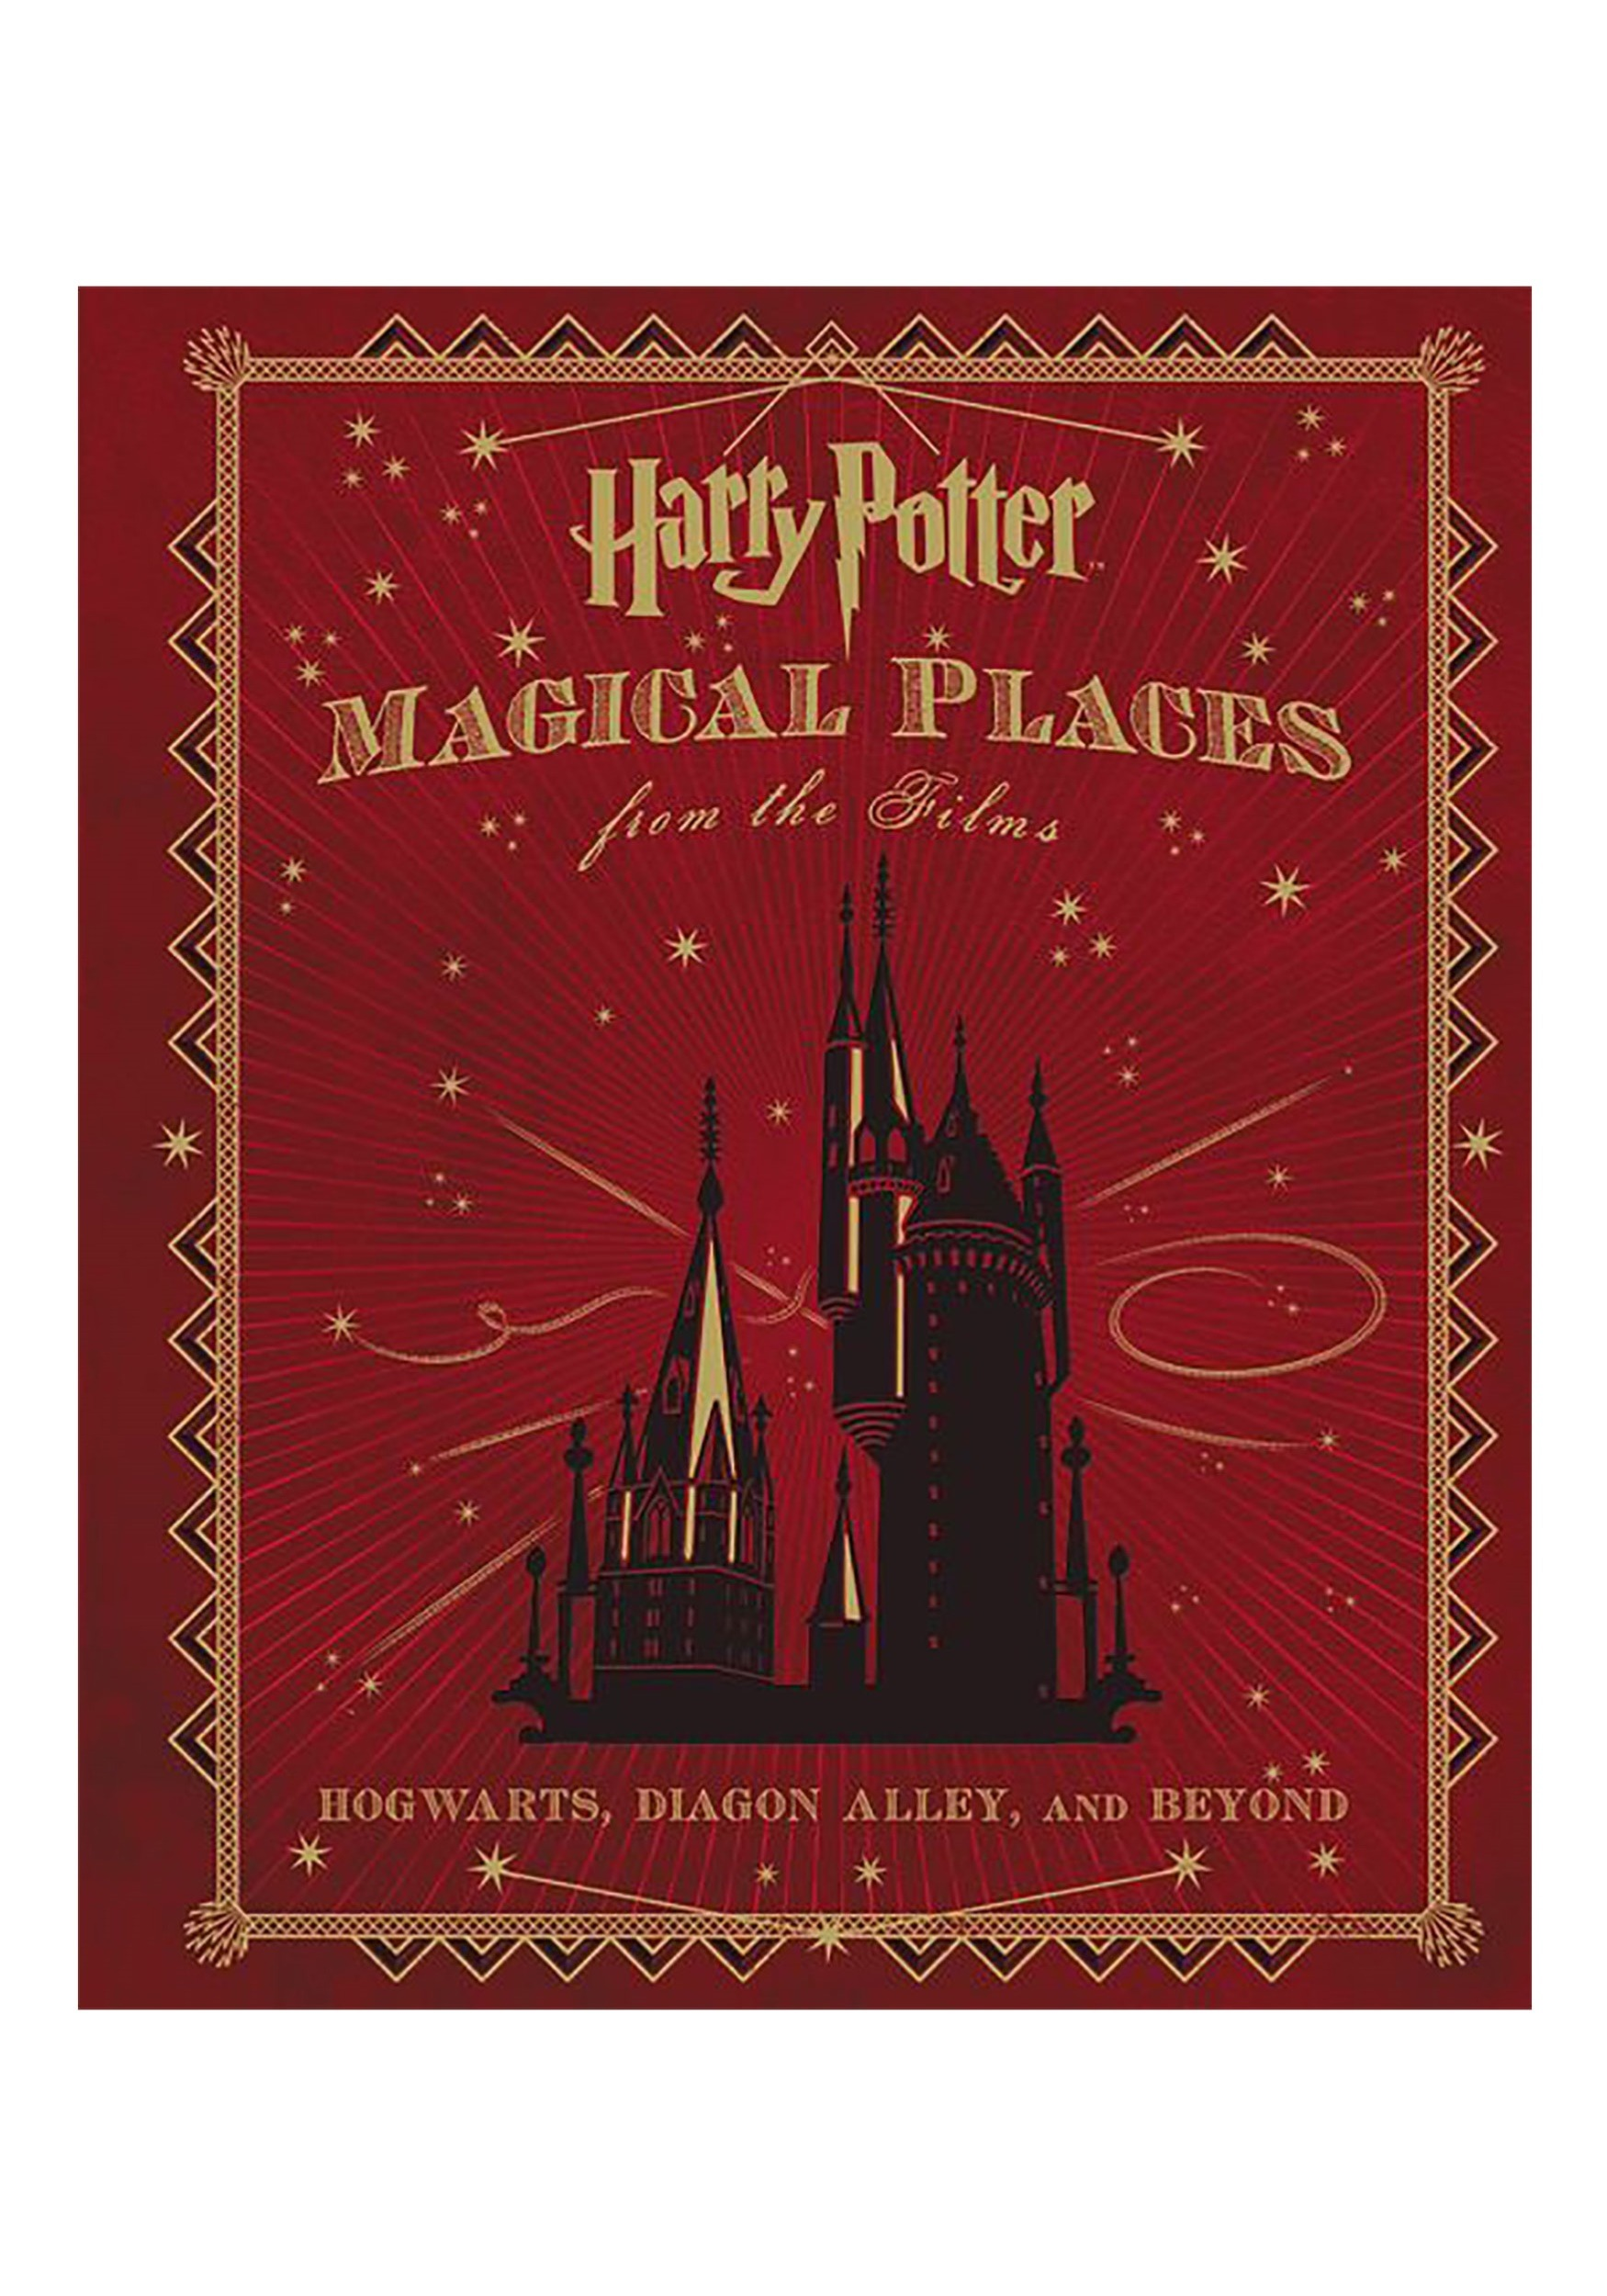 Magical Places from the Films Hardcover: Harry Potter